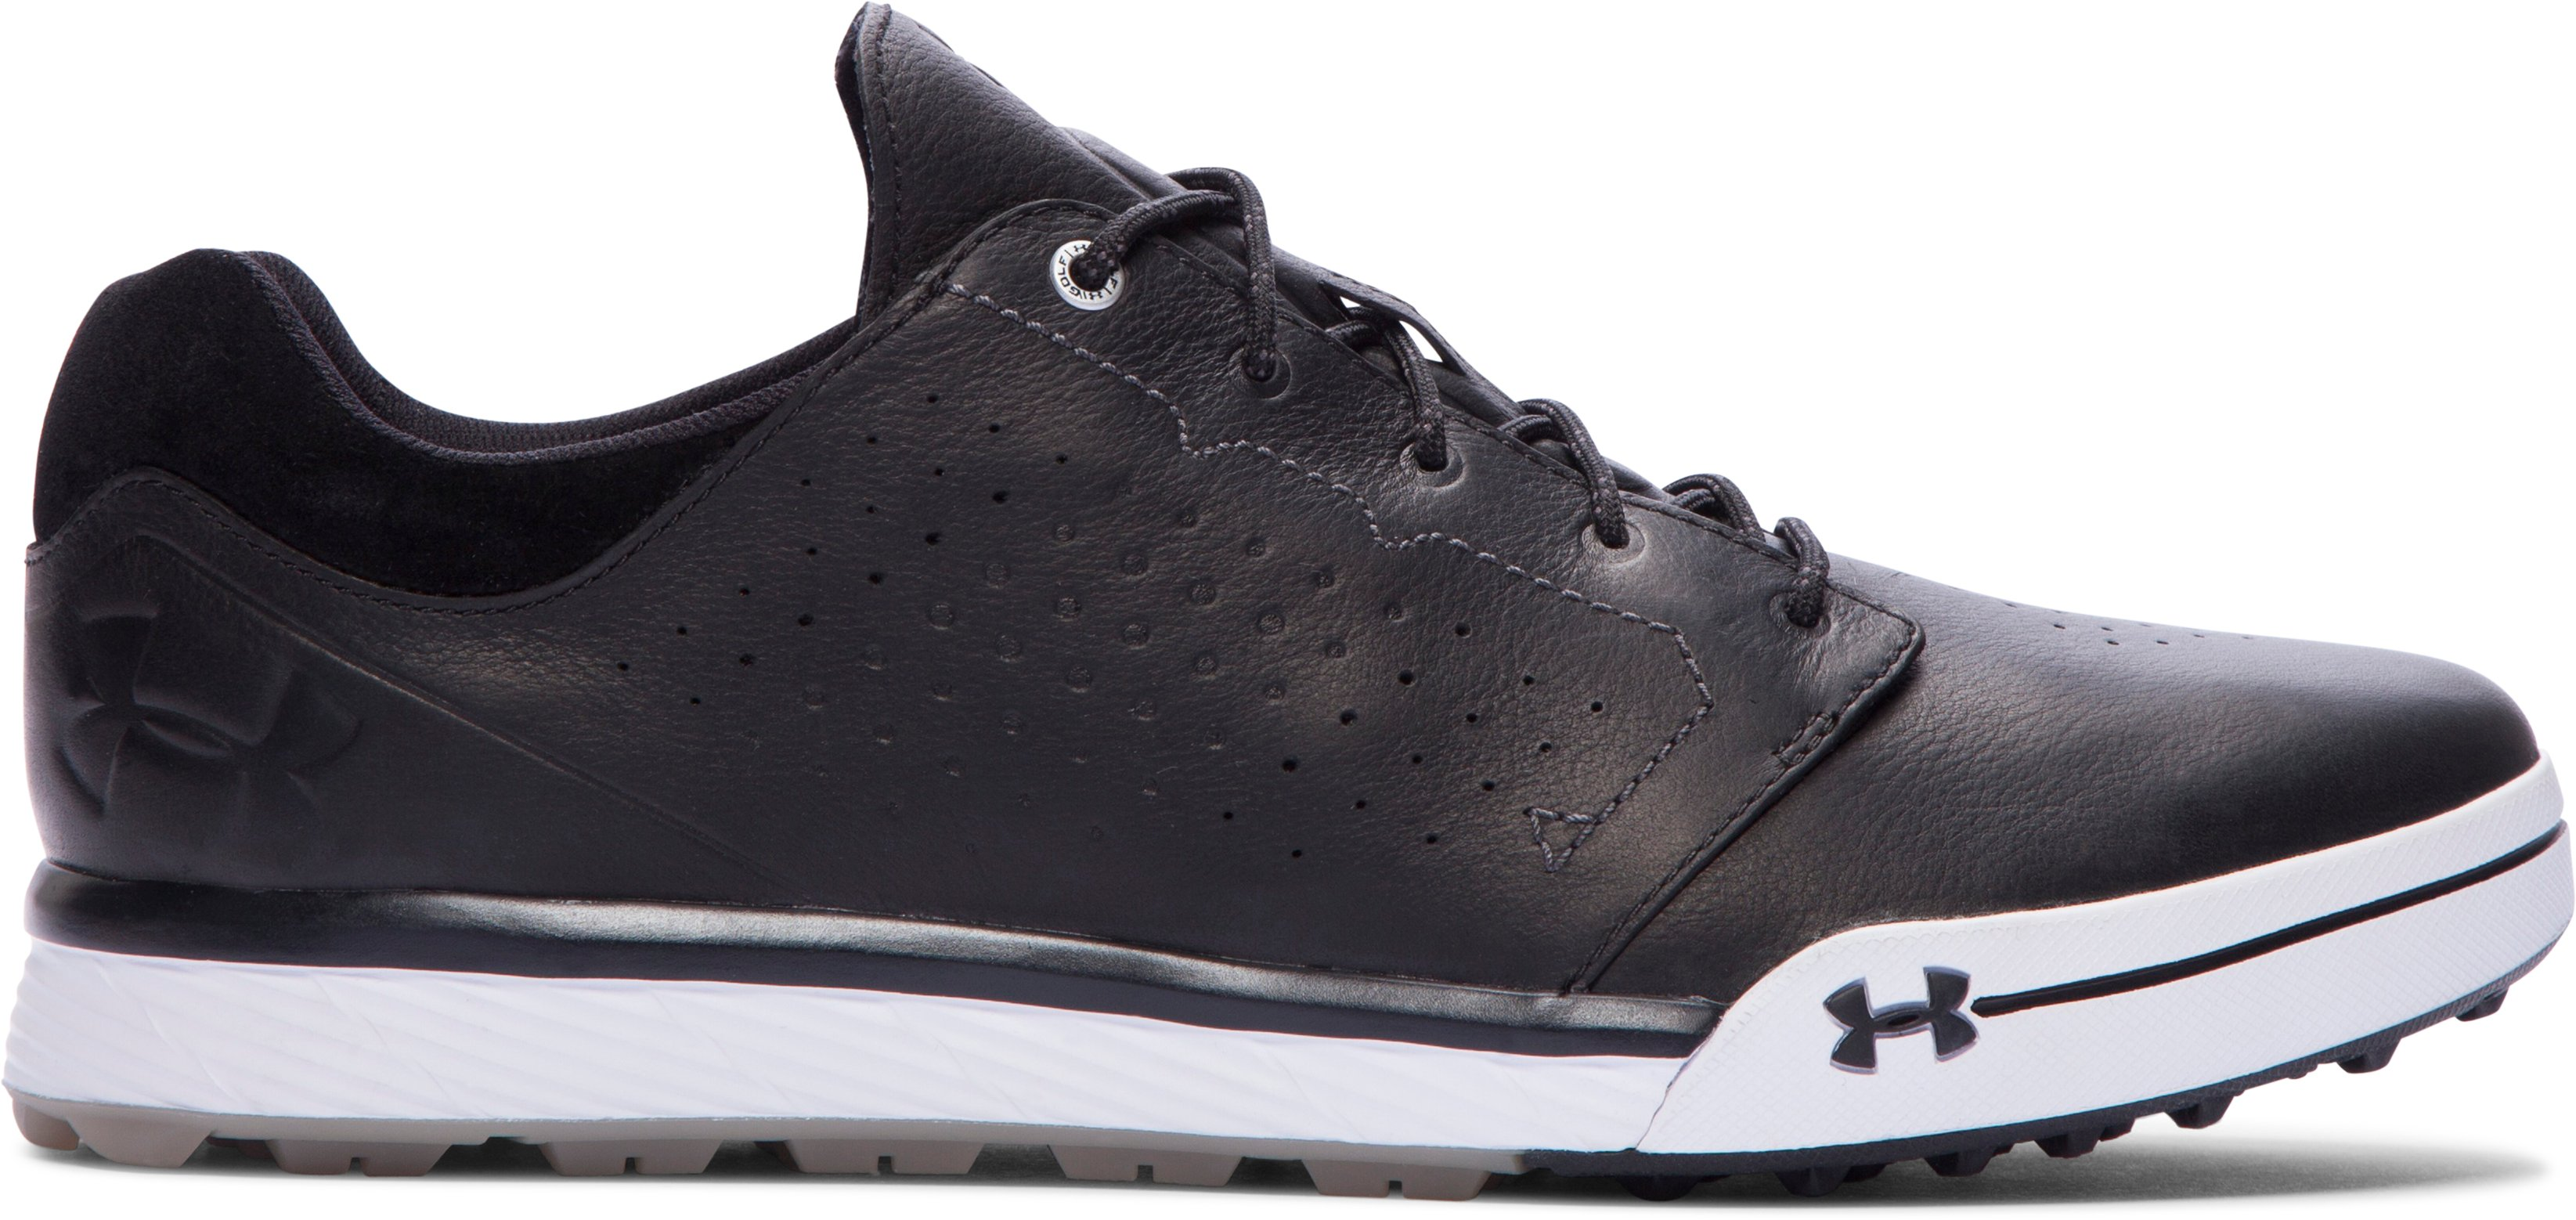 black golf shoes Men's UA Tempo Hybrid Golf Shoes Can't say much for performance as I didn't wear them on the course....First impression, great feeling shoe....Great job UA, keep up the great work and innovation.